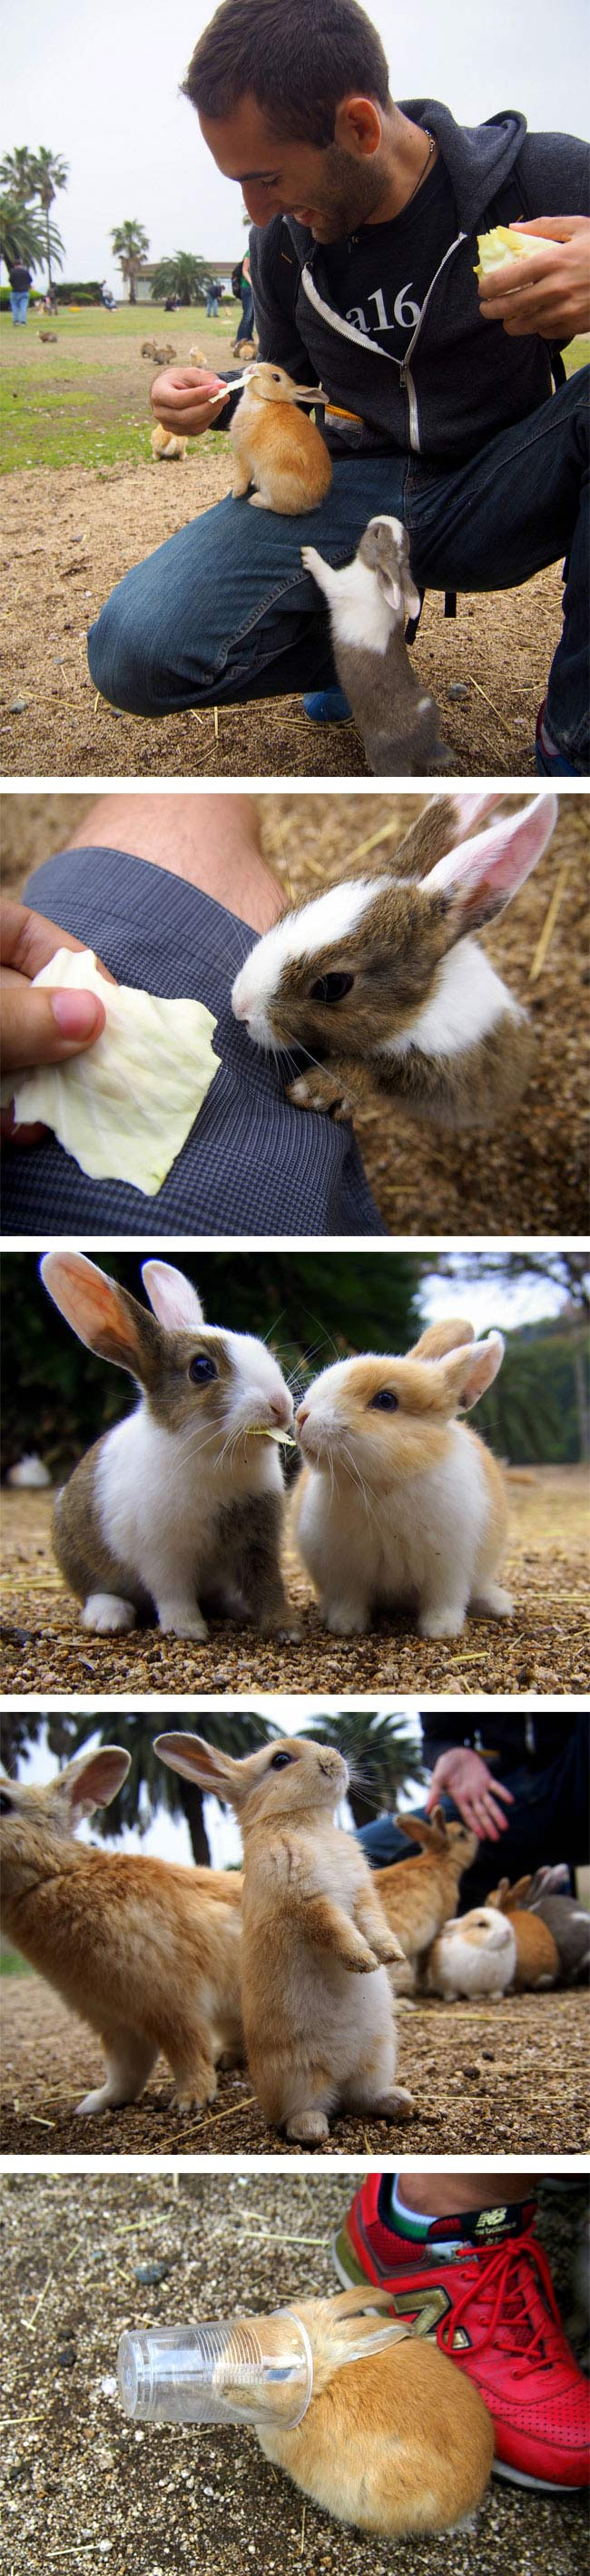 Rabbit Island, Okunoshima, Japan (5)